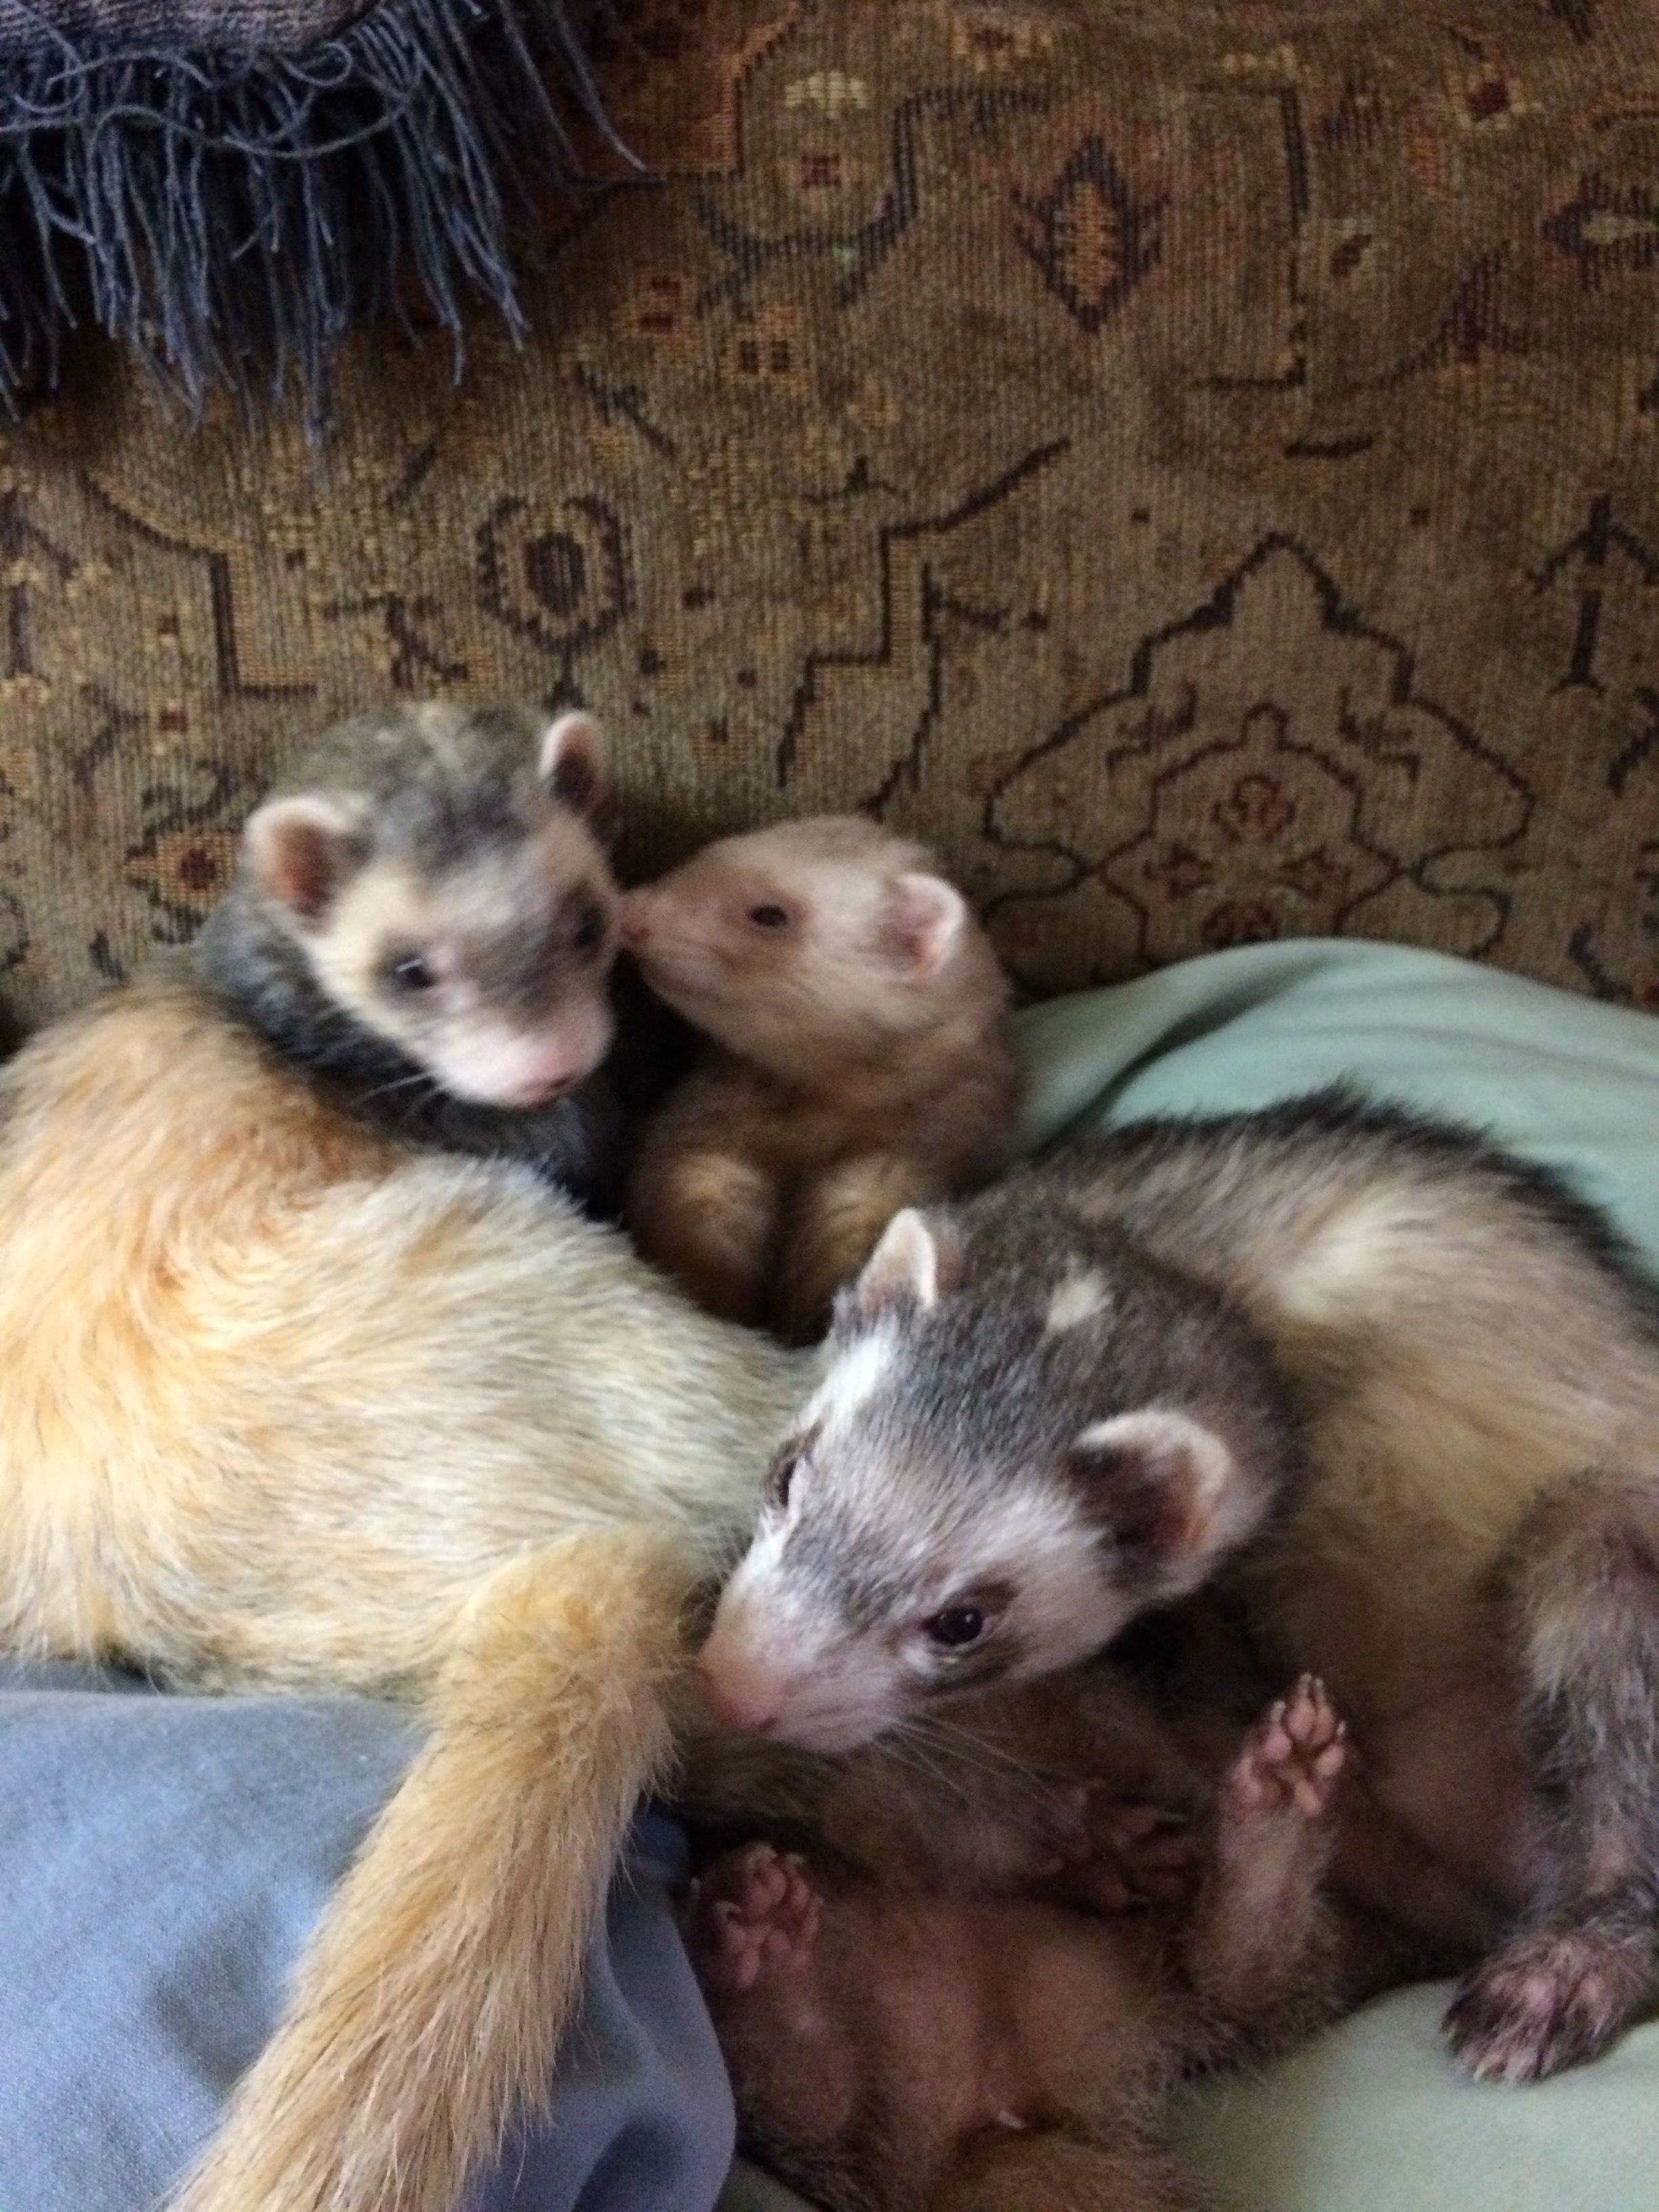 wolfy, Annie and Sparky | My life | Pinterest | Annie